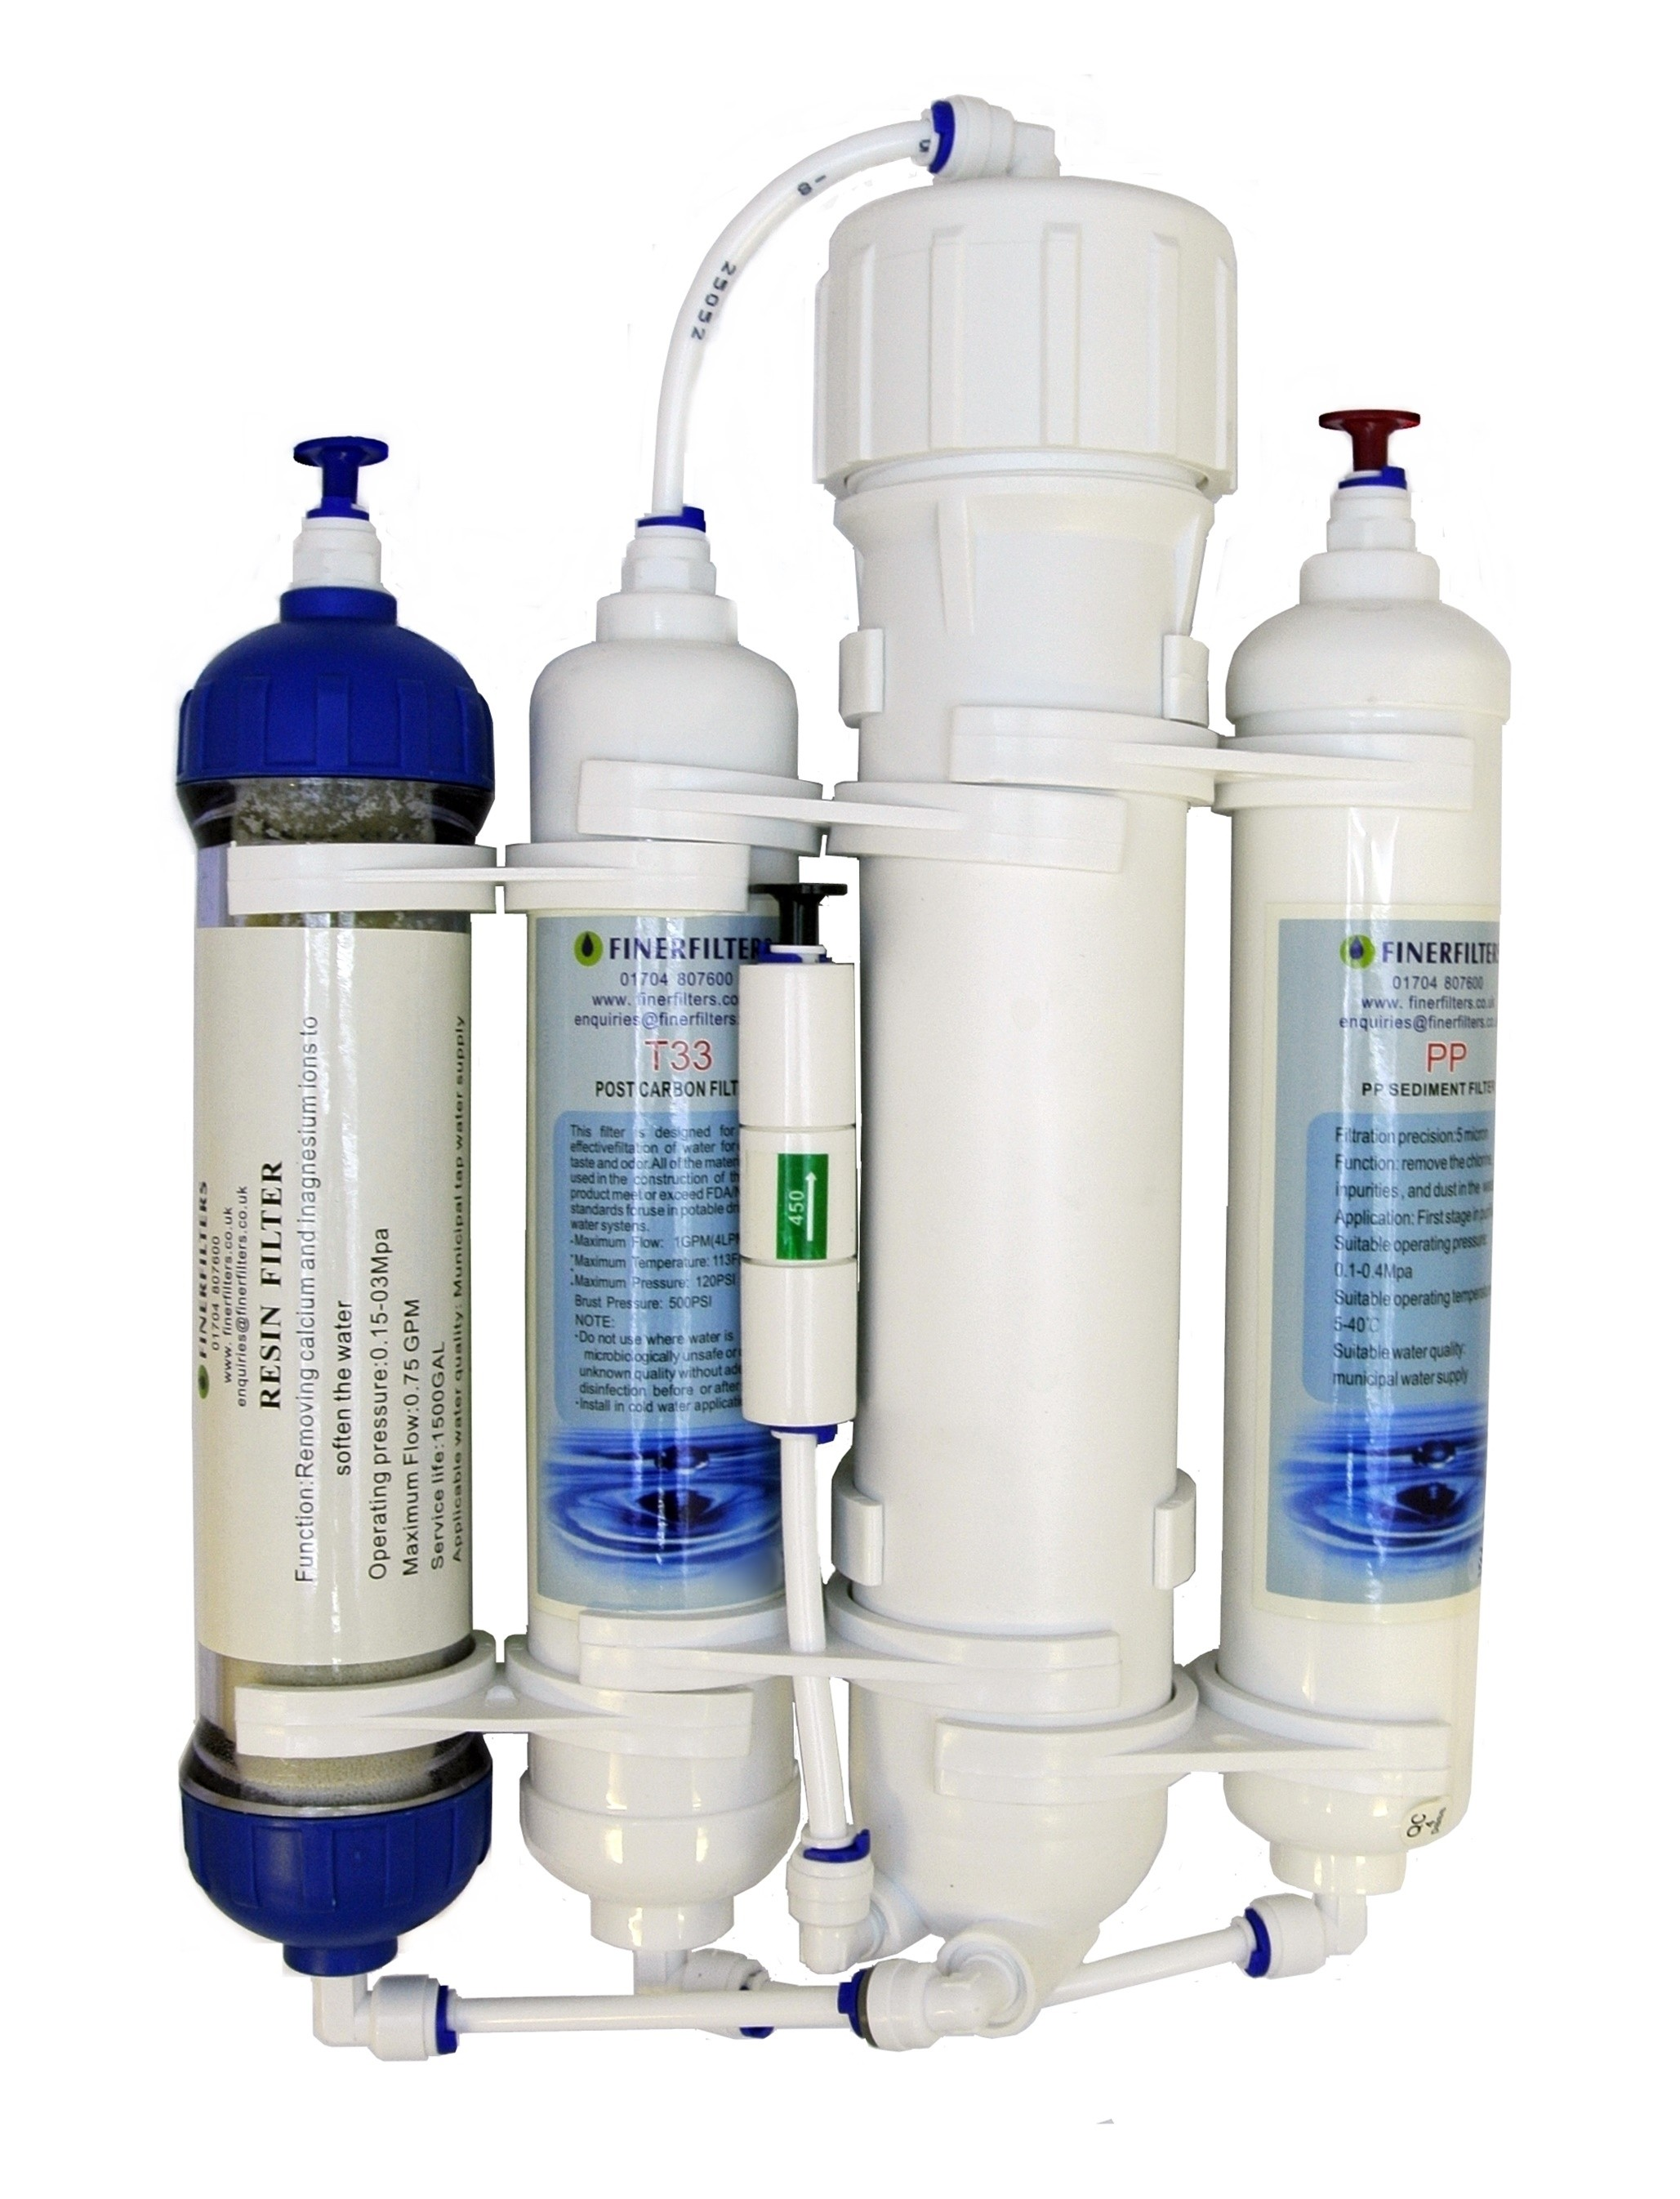 4 Stage Compact Aquarium Reverse Osmosis 100 GPD Unit with Inline DI Chamber for Tropical Fish, Marine & Discus by Finerfilters